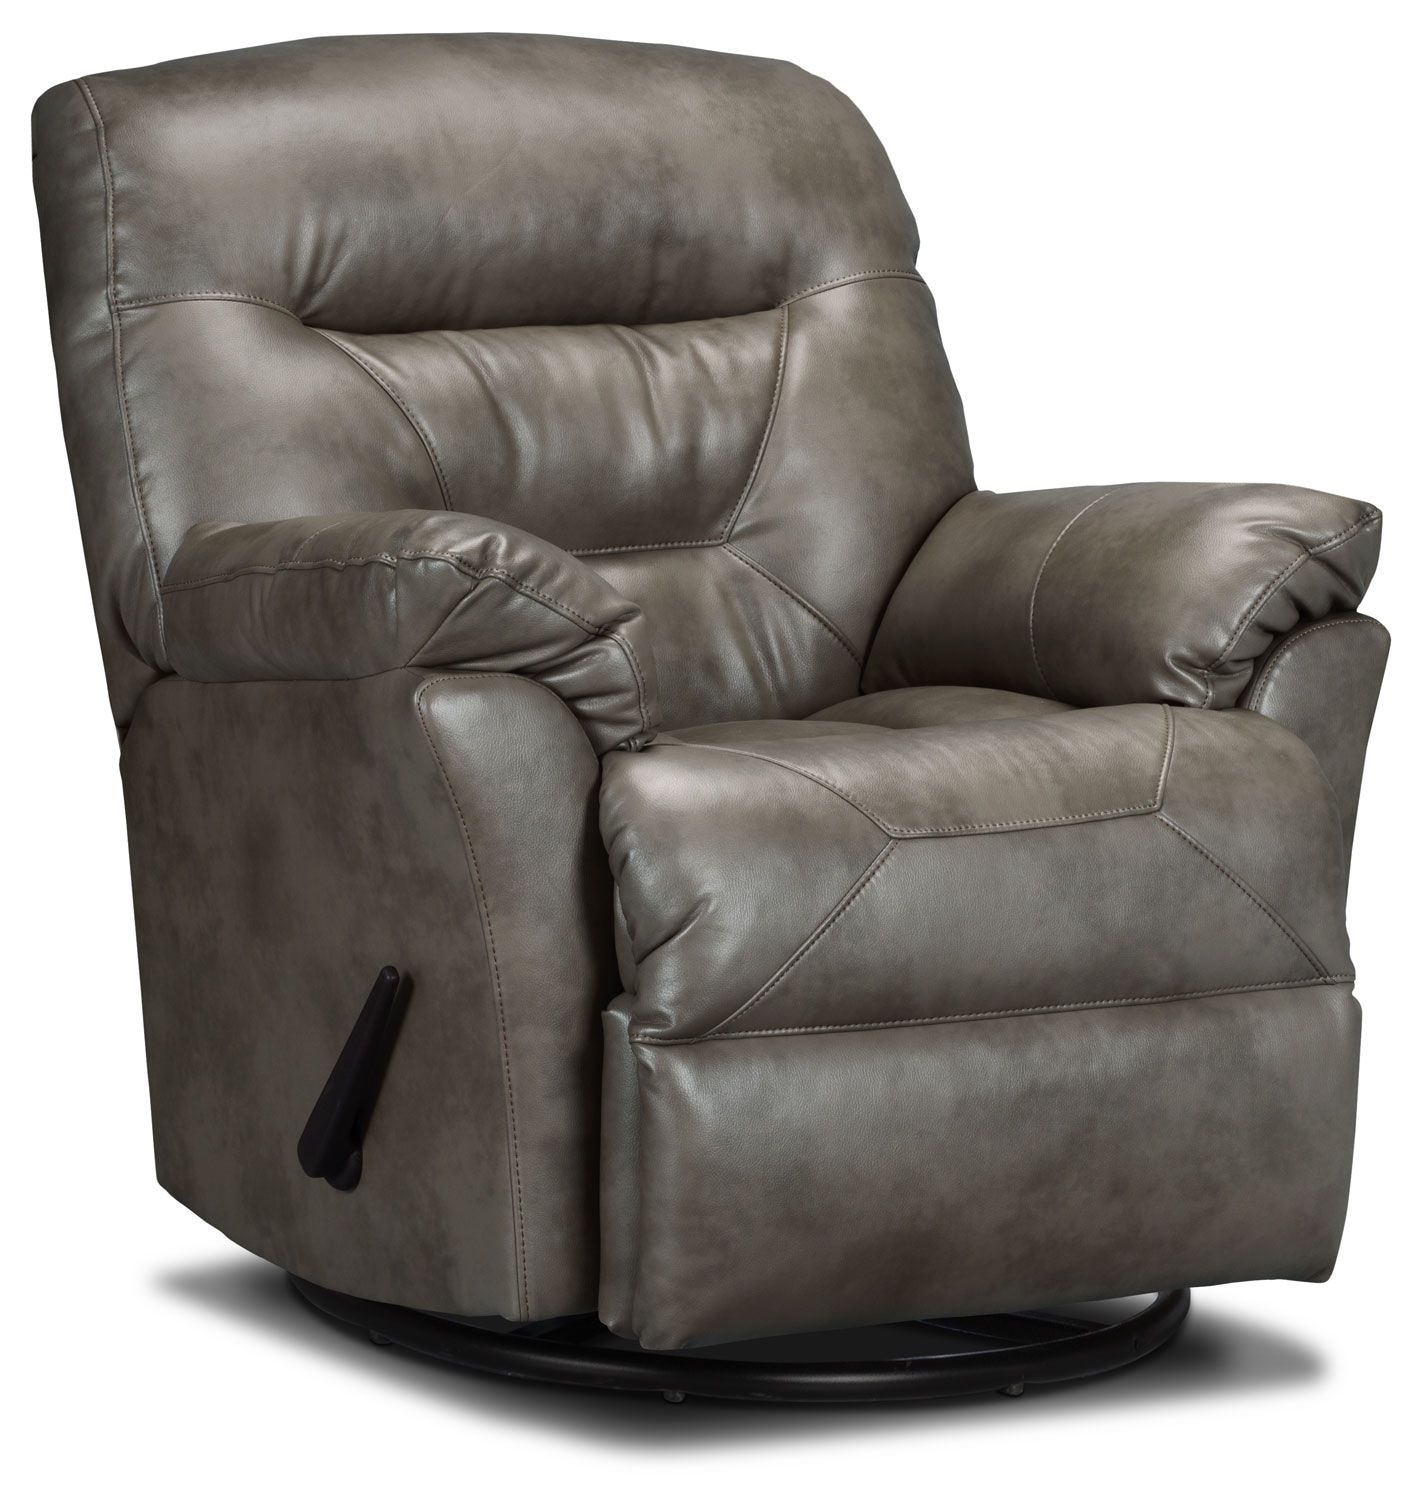 Living Room Furniture - Designed2B Recliner 4579 Leather-Like Fabric Swivel Glider Recliner - Smoke